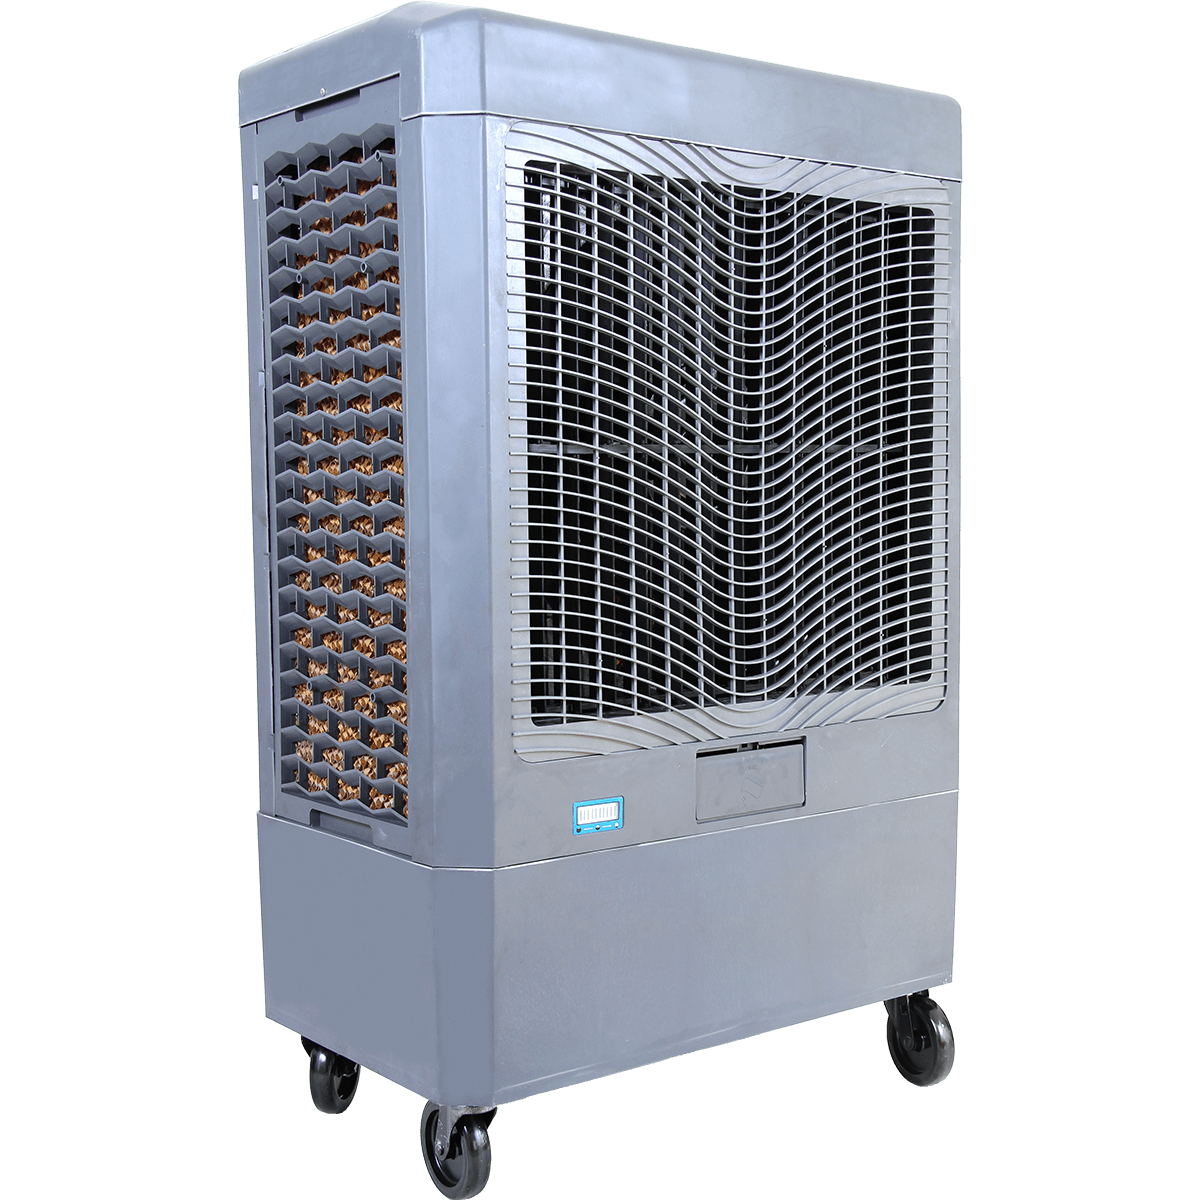 Hessaire MC61M 5 300 CFM 3 Speed Portable Evaporative Cooler Sylvane #684634